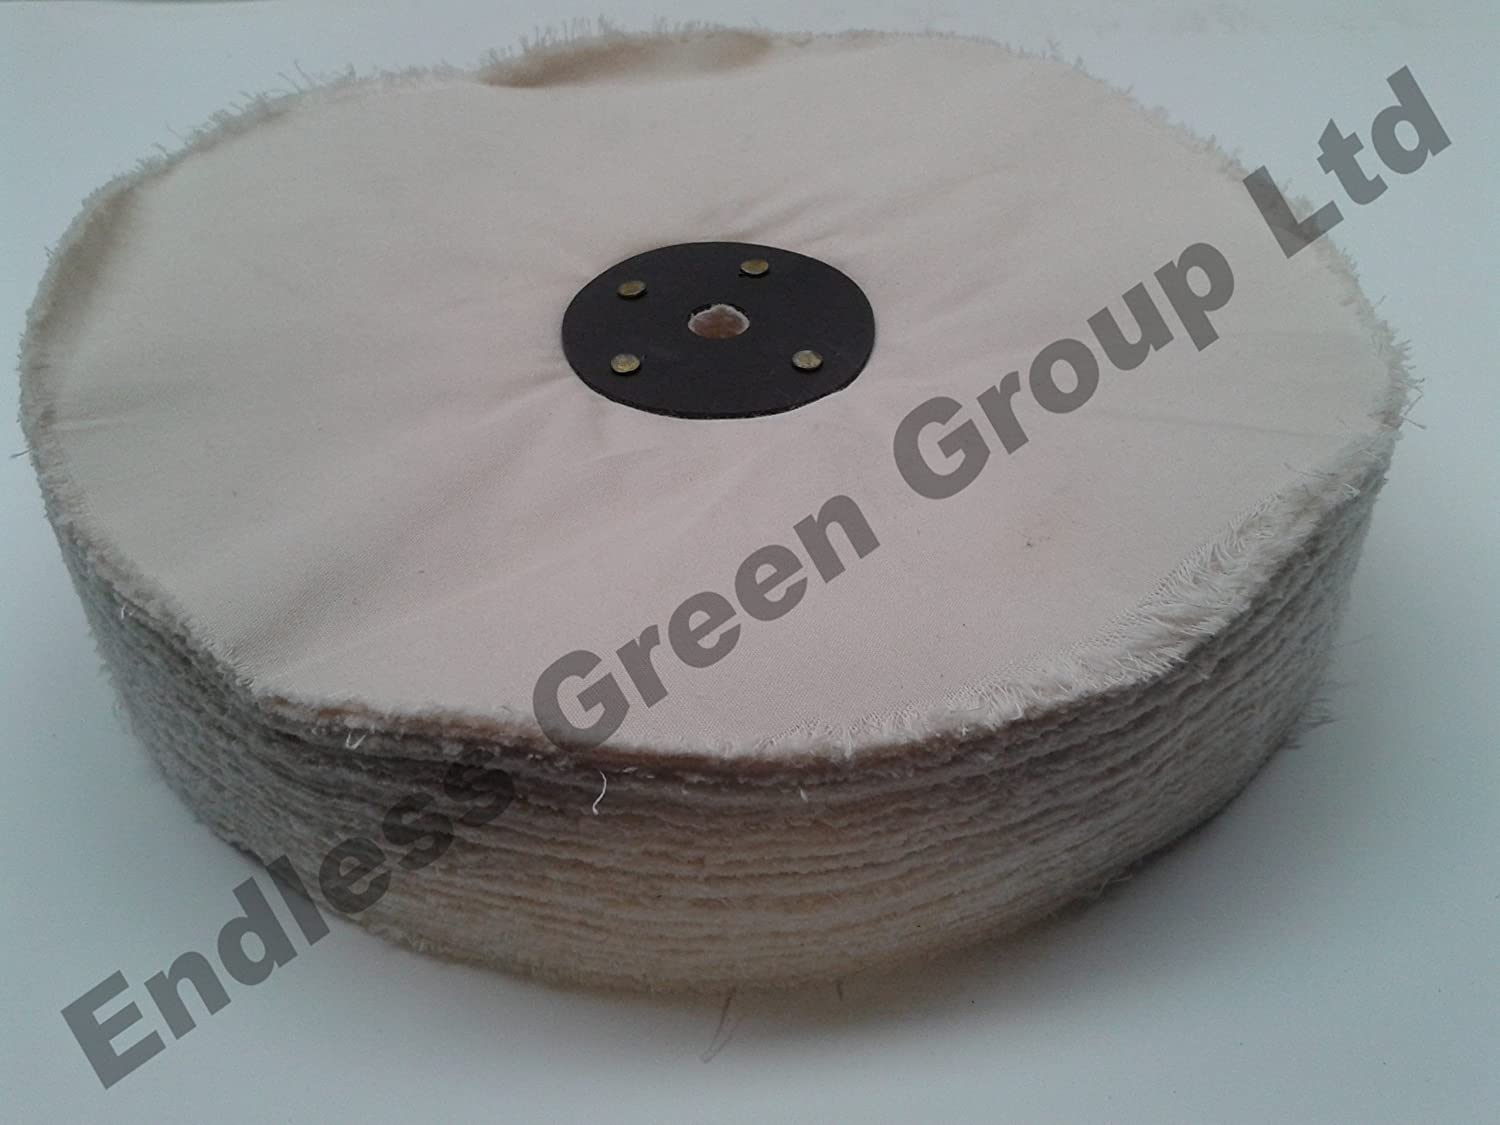 Bolpol LOOSE LEAF Cotton Buffing Wheel, ideal for use on polishing machine or converted Bench Grinder - Polishing Wheel Size 8' x 1.5' (200mm x 40mm) L200/120 Endless Green Group Ltd